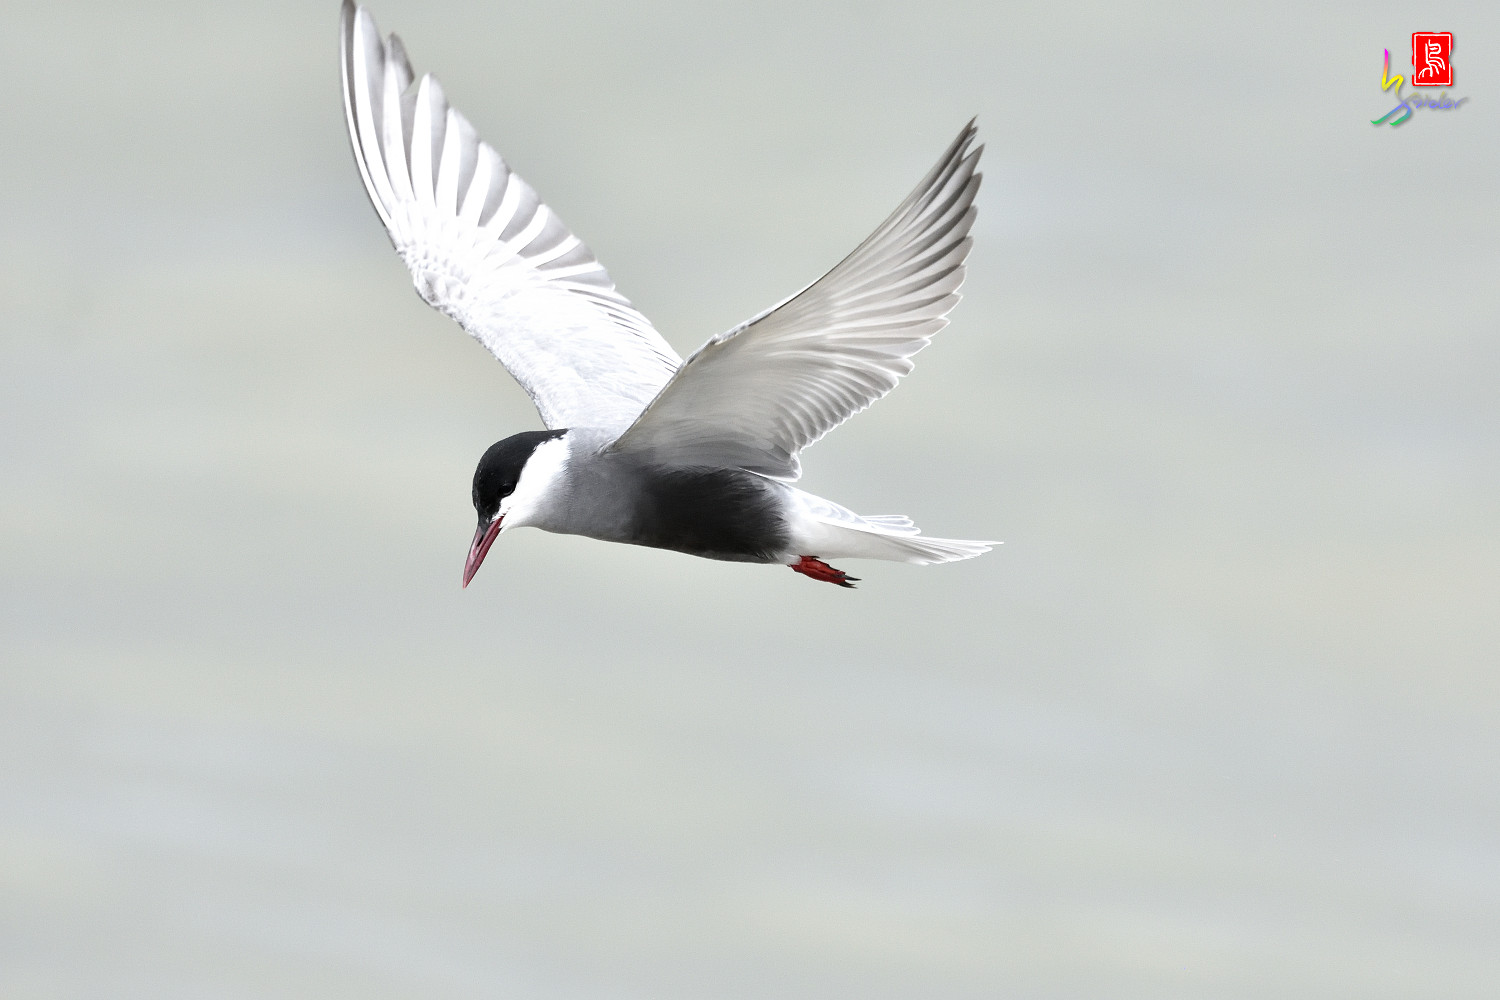 Whiskered_Tern_4466